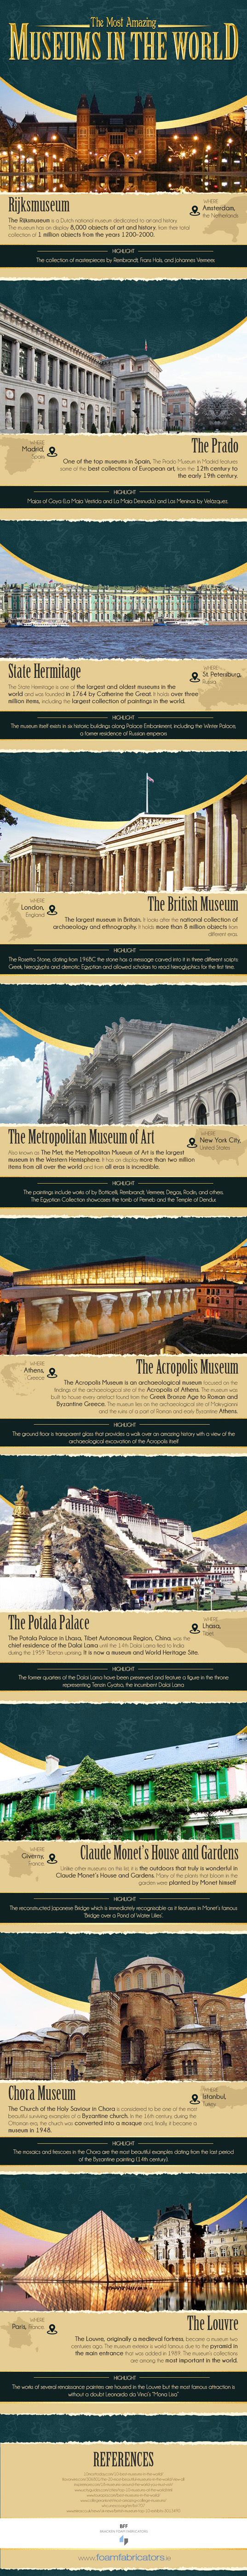 The-Most-Amazing-Museums-in-the-World-Infographic